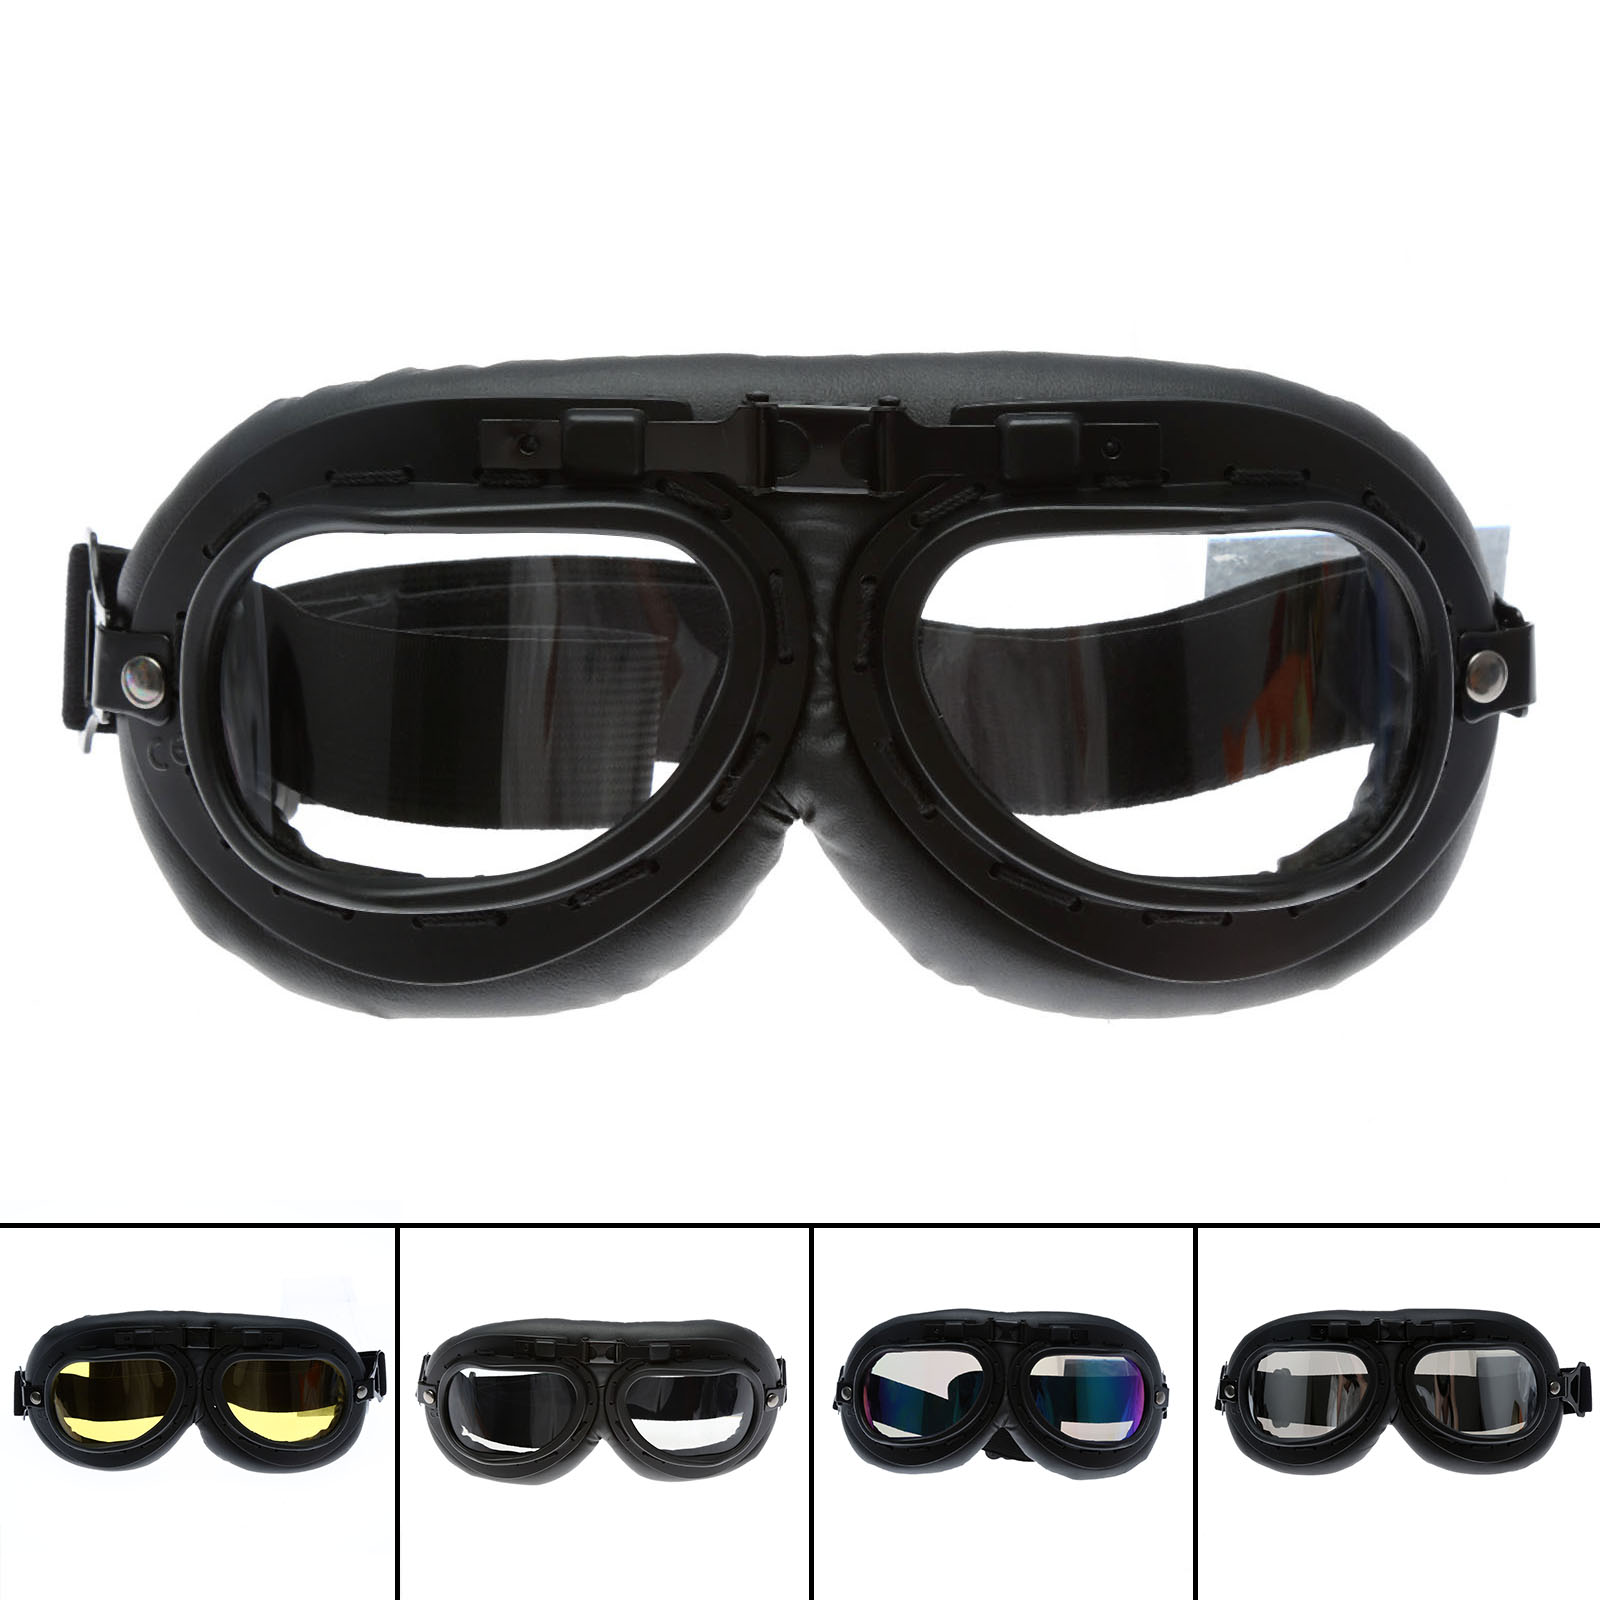 Motorcycle Bike Bicycle Skiing Goggles Motocorss Outdoor Sports Snowboard Glasses Helmet Protective Eyewear Anti UV Cafe Racer